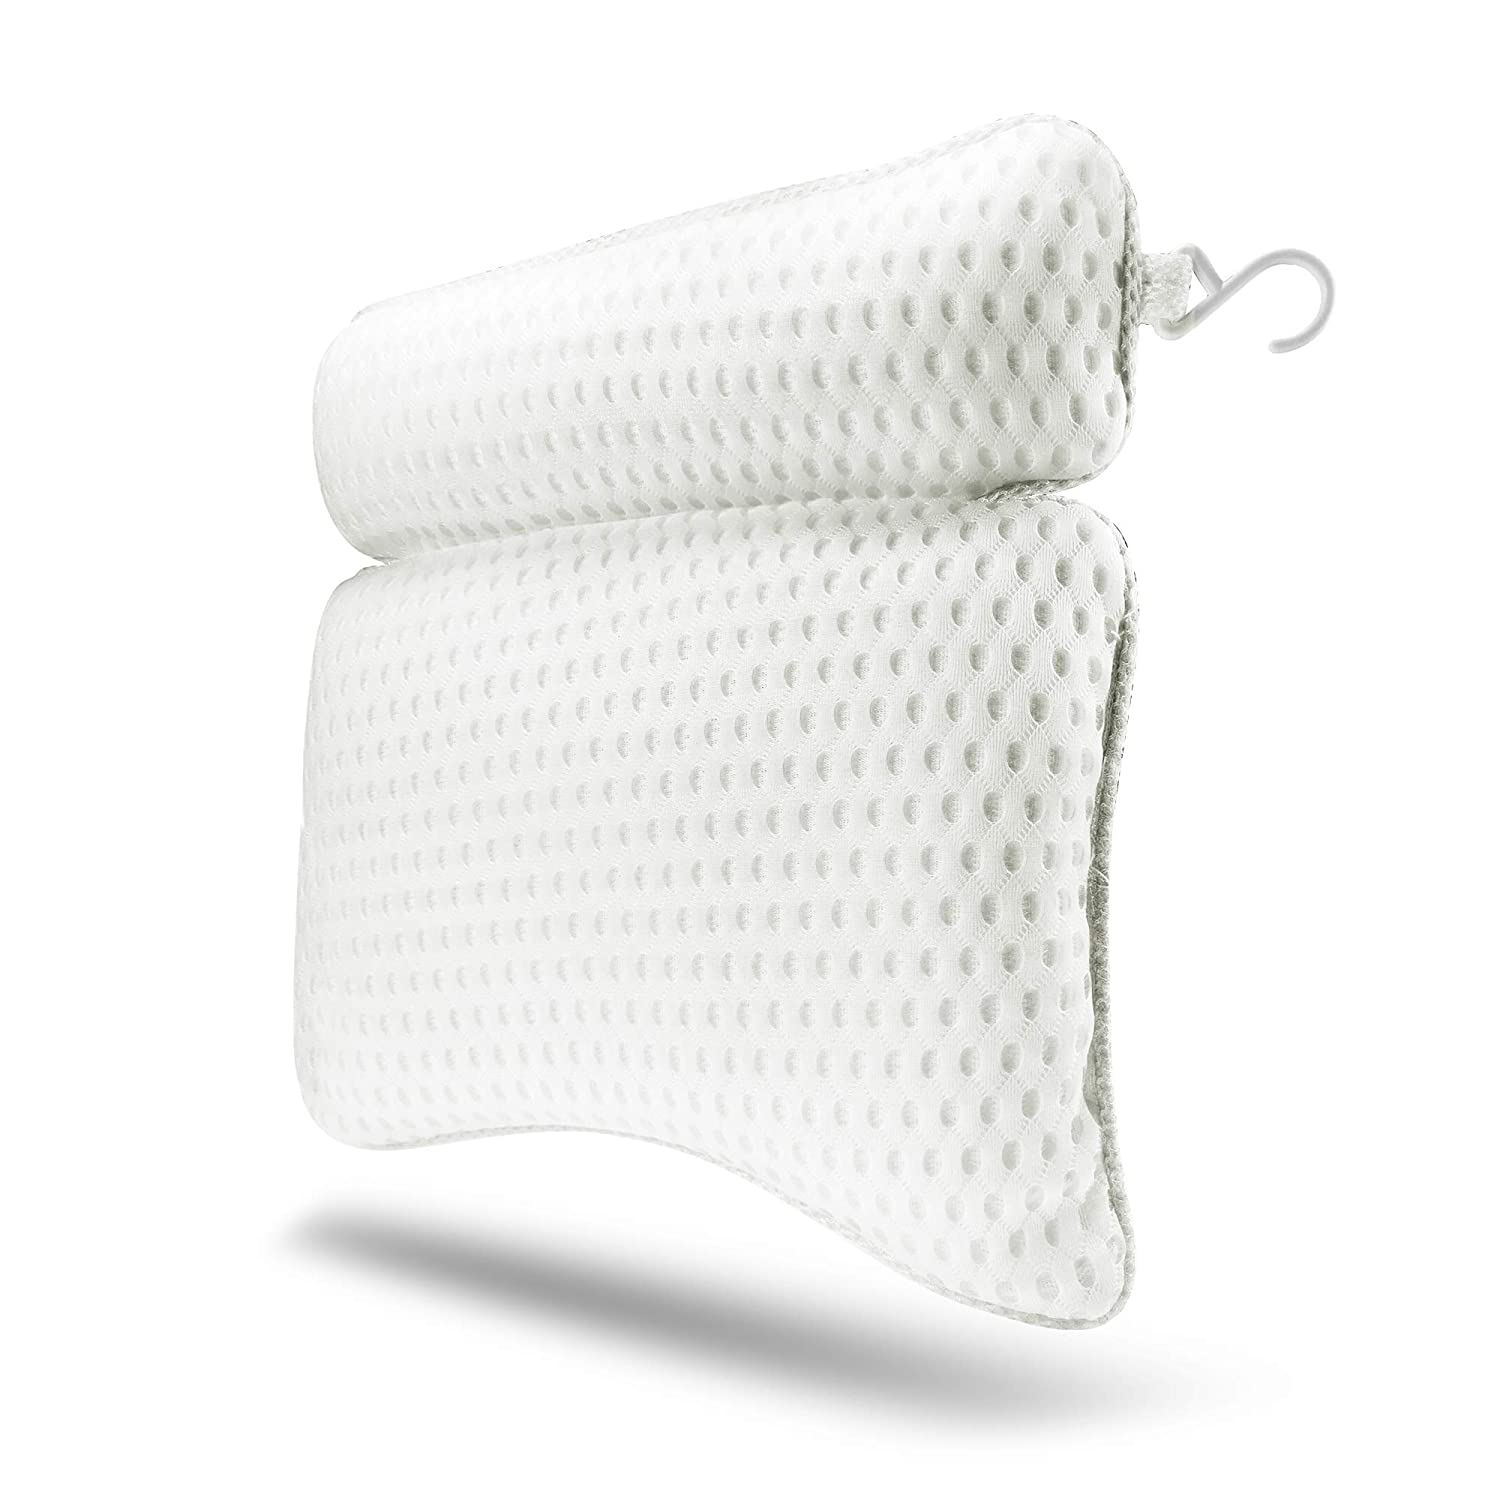 TOPEIUS Spa Bathtub Pillow QuiltedAir Bath Pillow - Quick-Drying Mesh Fabric with Large Suction Cups, Hanging Hook (White)